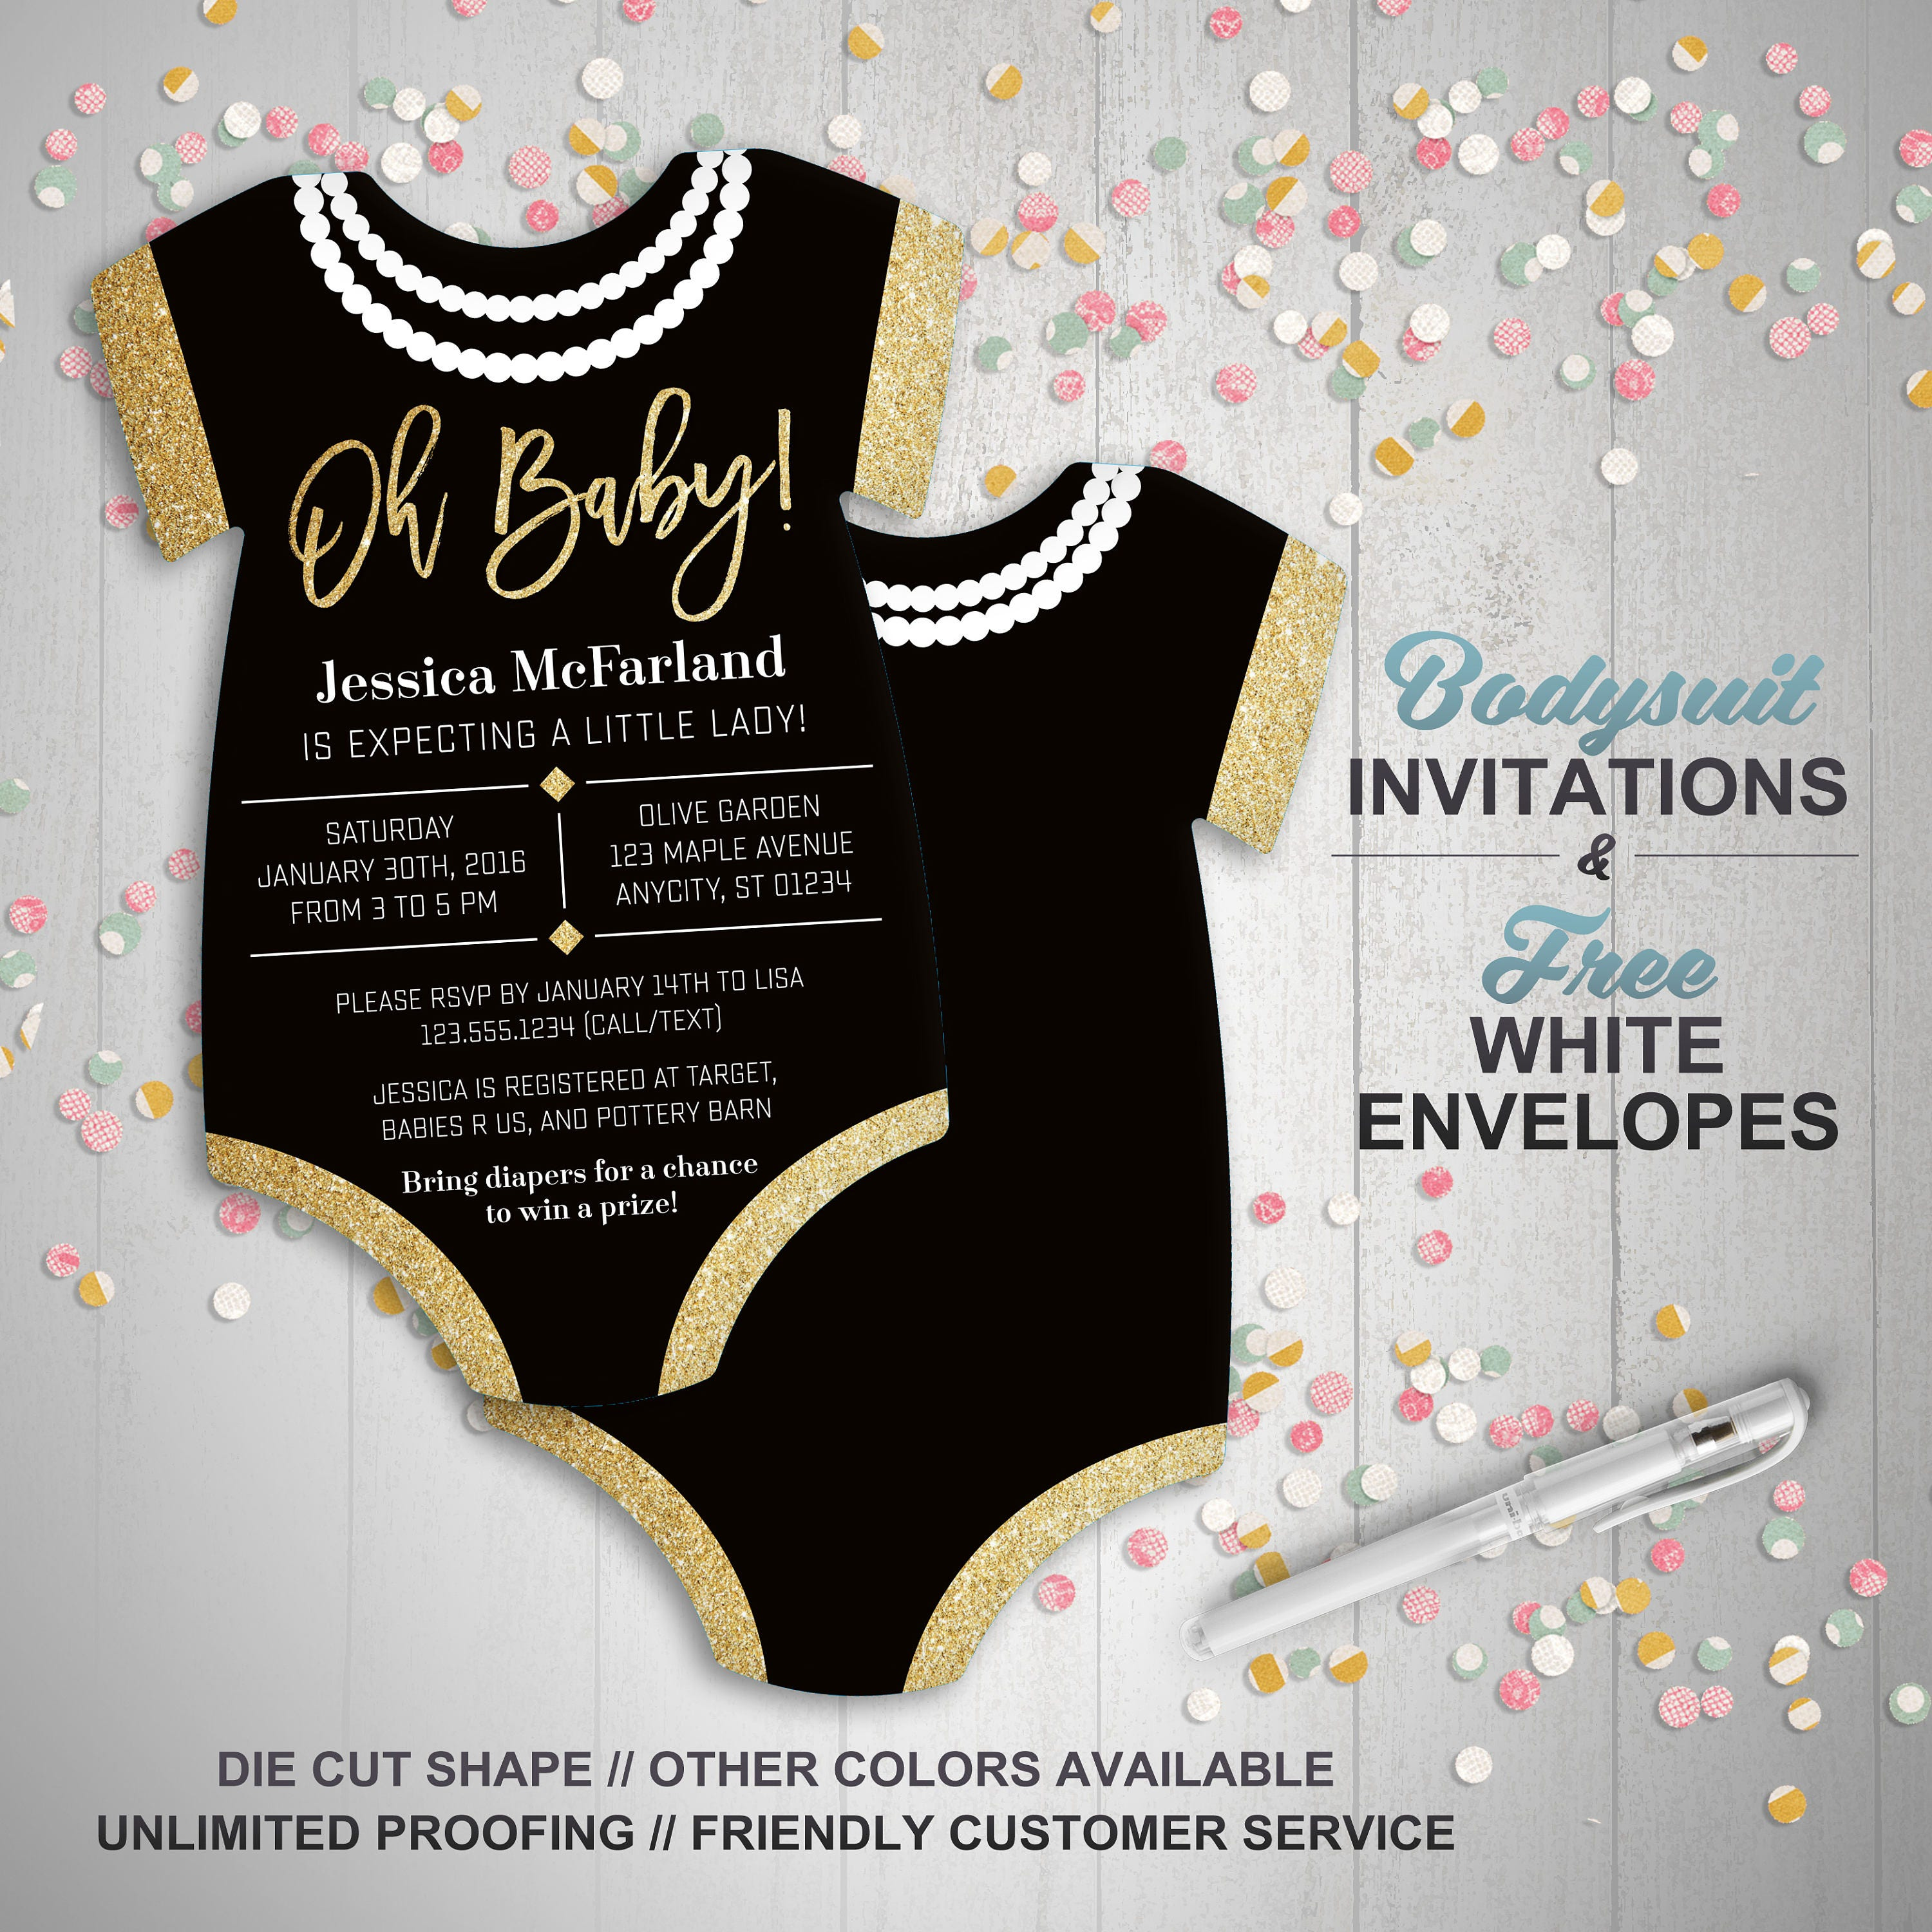 Glitter & Pearls Baby Shower Invitations girl baby shower